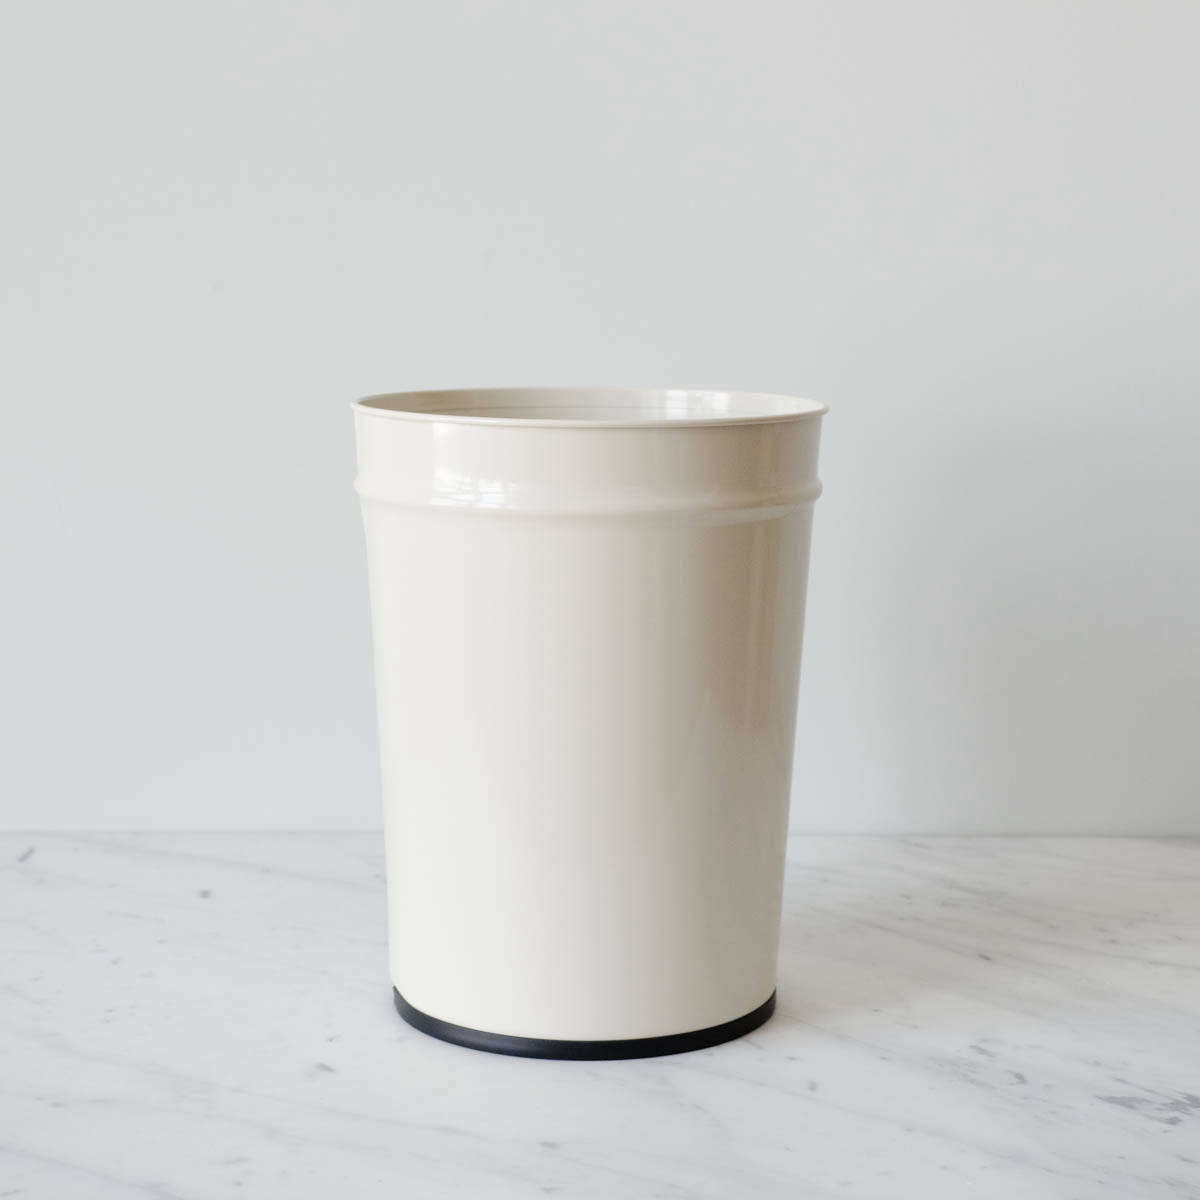 Bunbuku of Japan wastebasket from Mur Lifestyle.